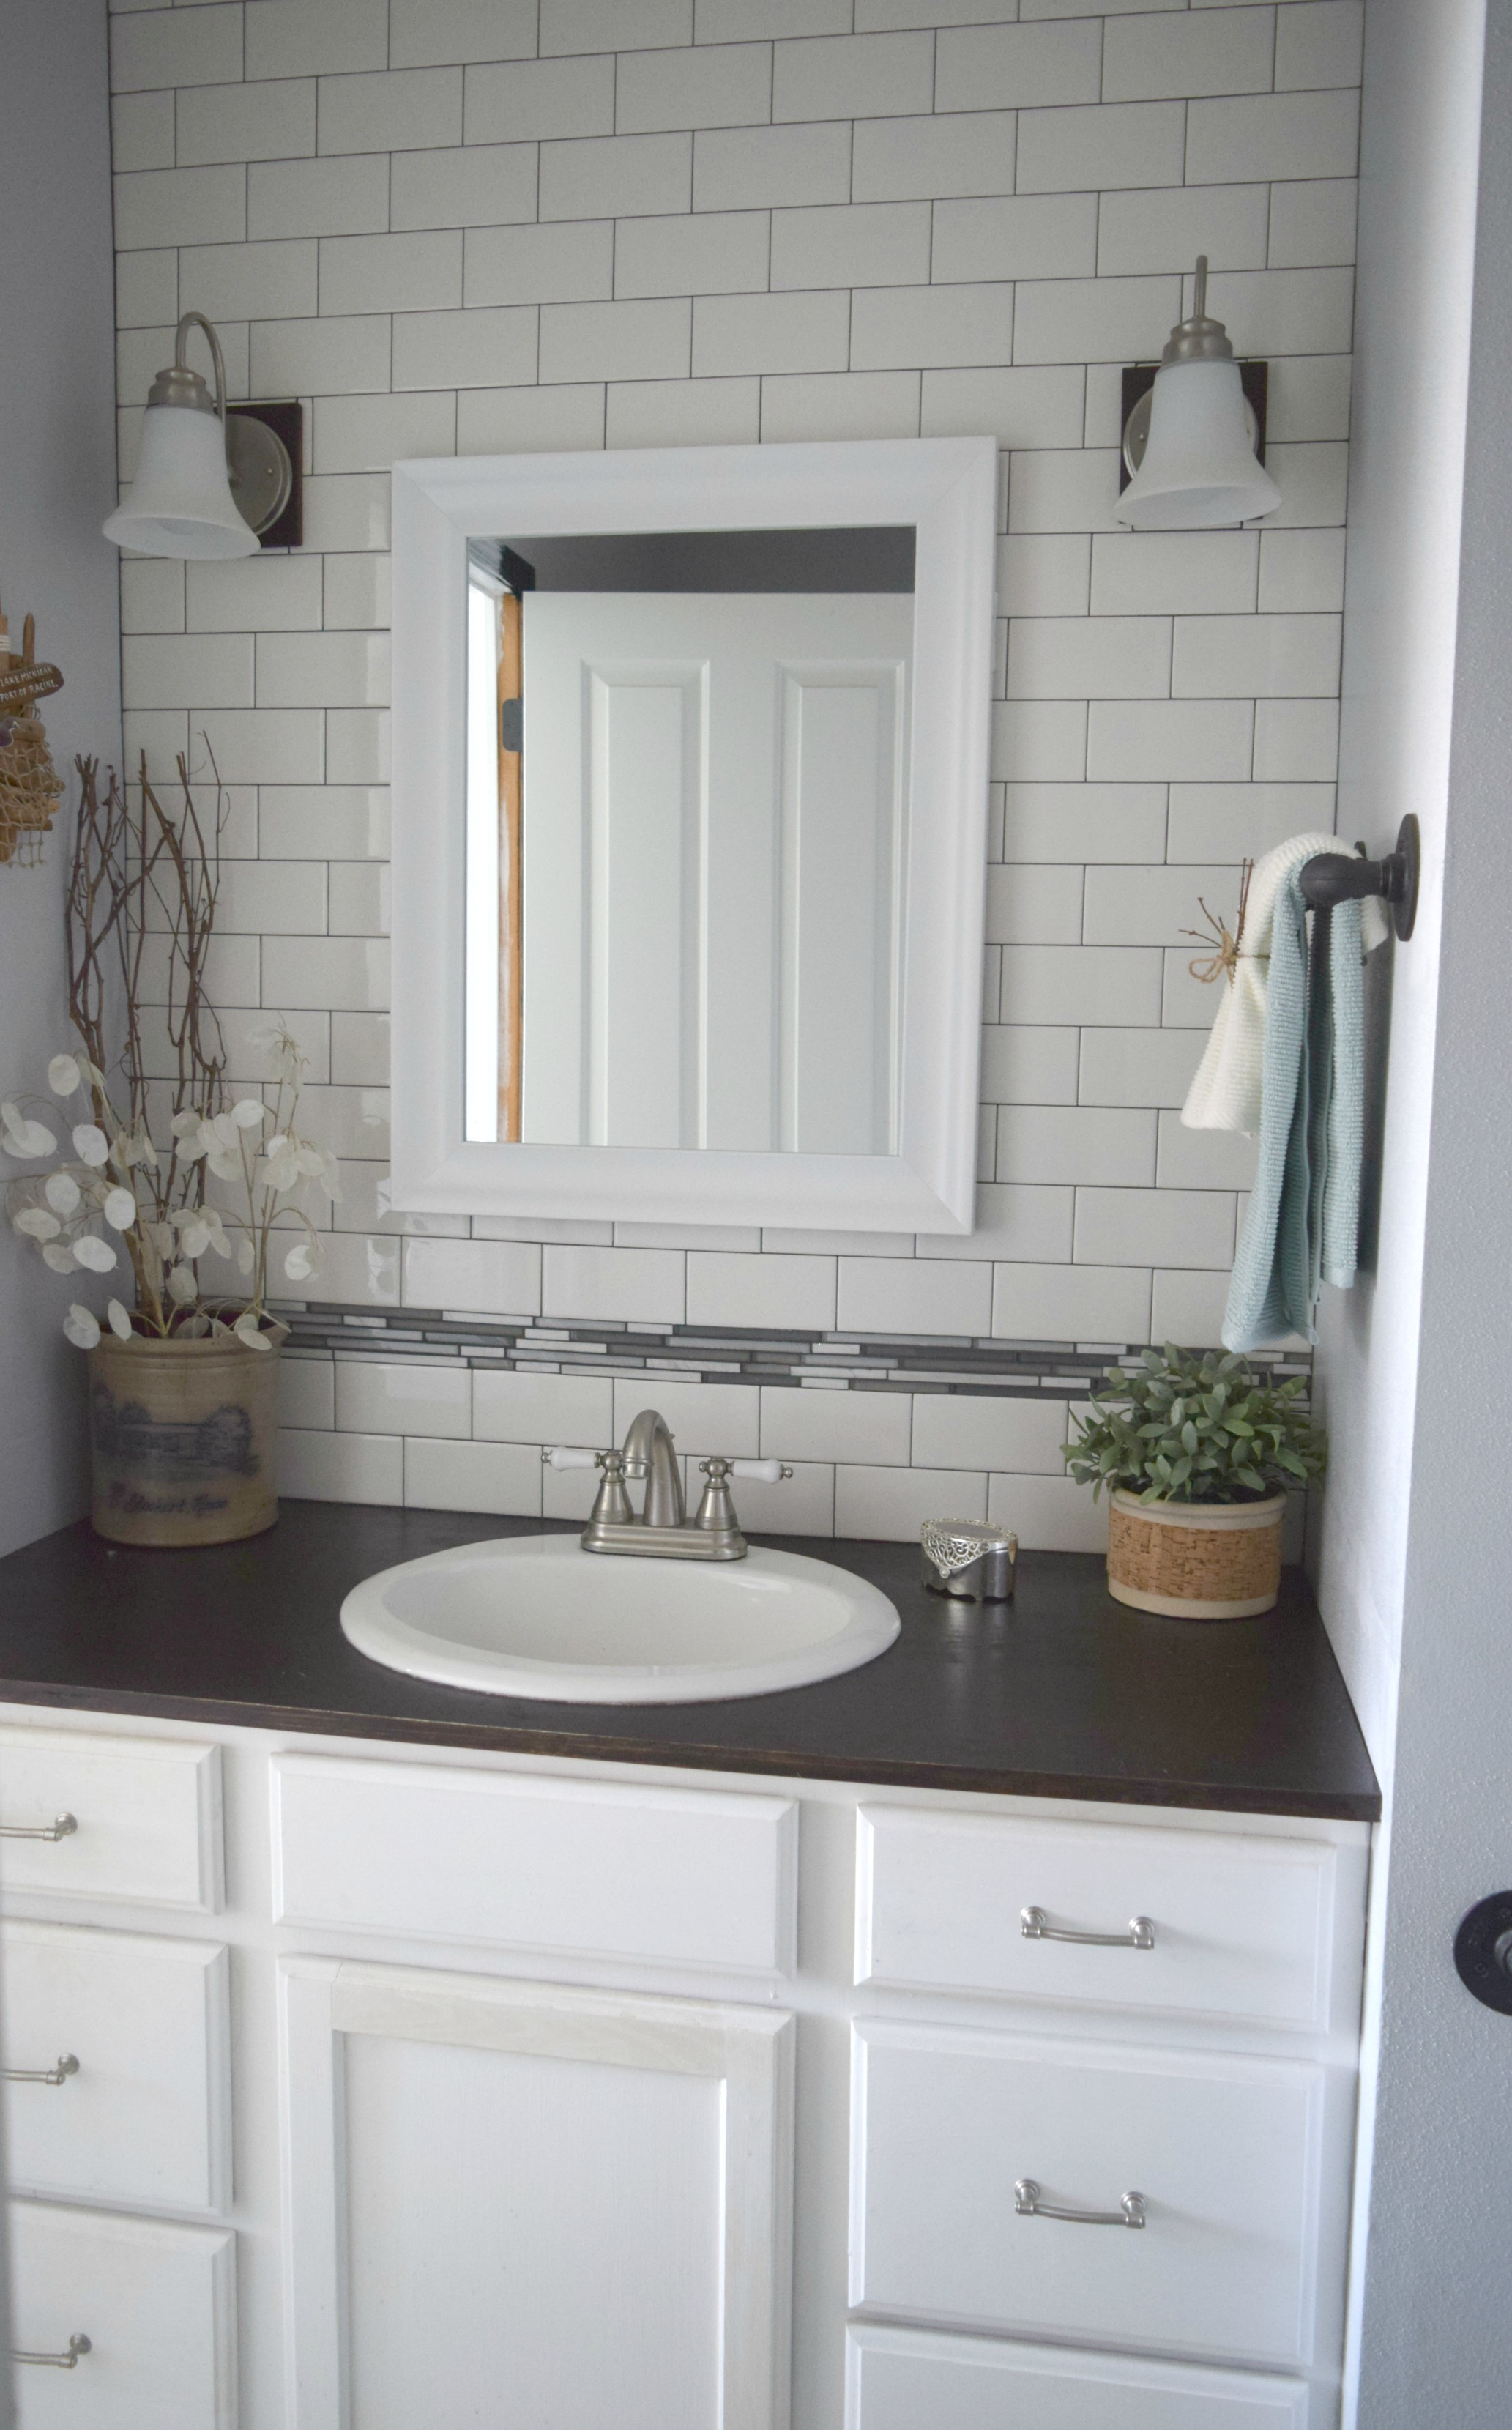 Simple bathroom updates • Our House Now a Home